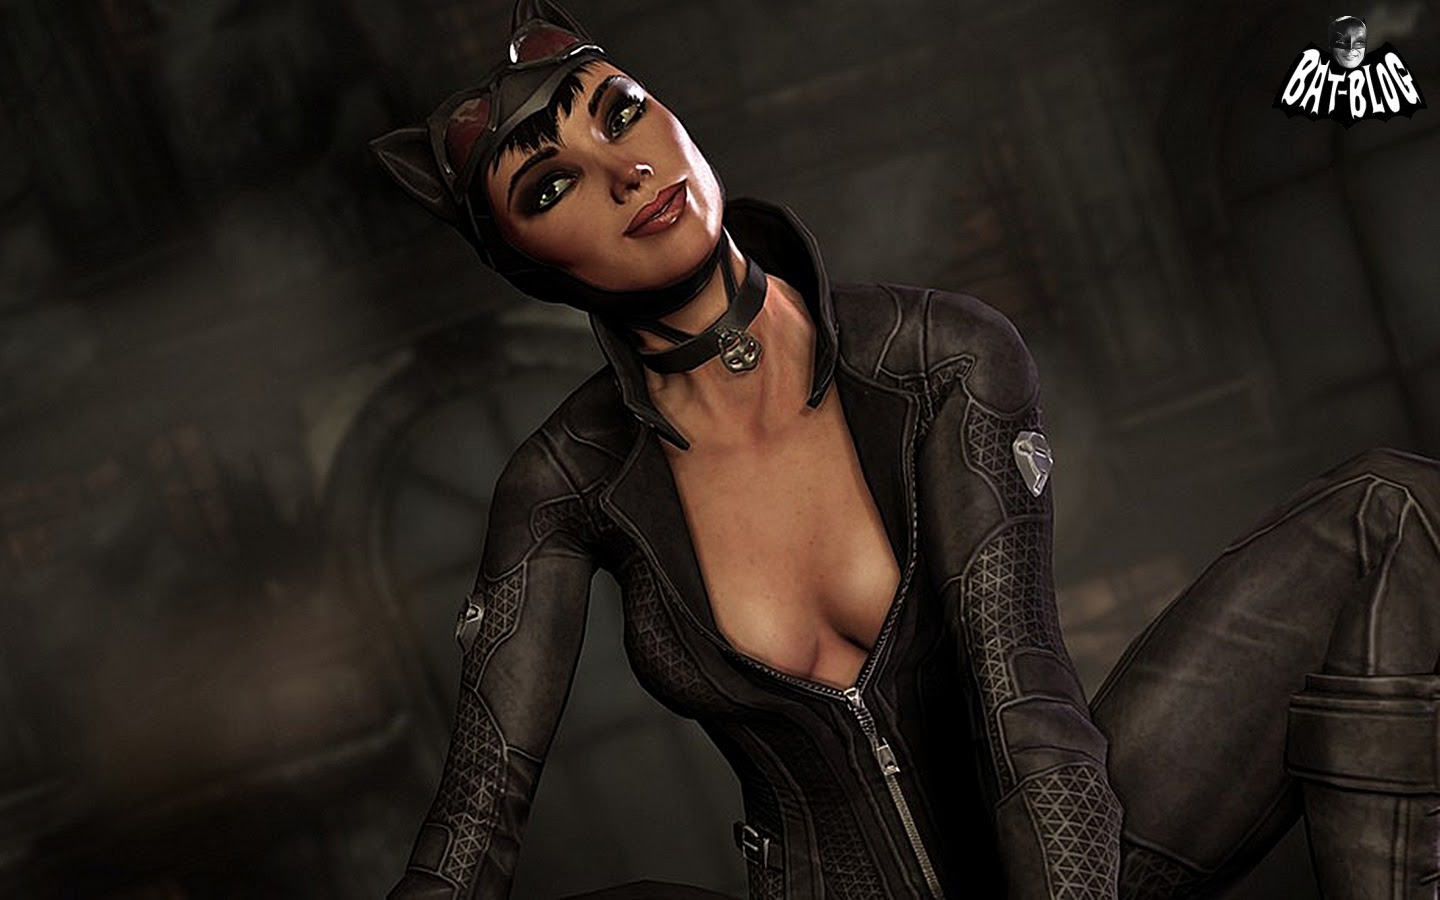 http://2.bp.blogspot.com/-lIEWpRZjXWQ/TeaMJArZS0I/AAAAAAAAPSU/A4daTevG2sk/s1600/catwoman-batman-arkham-city-video-ga%2520me-wallpaper.jpg